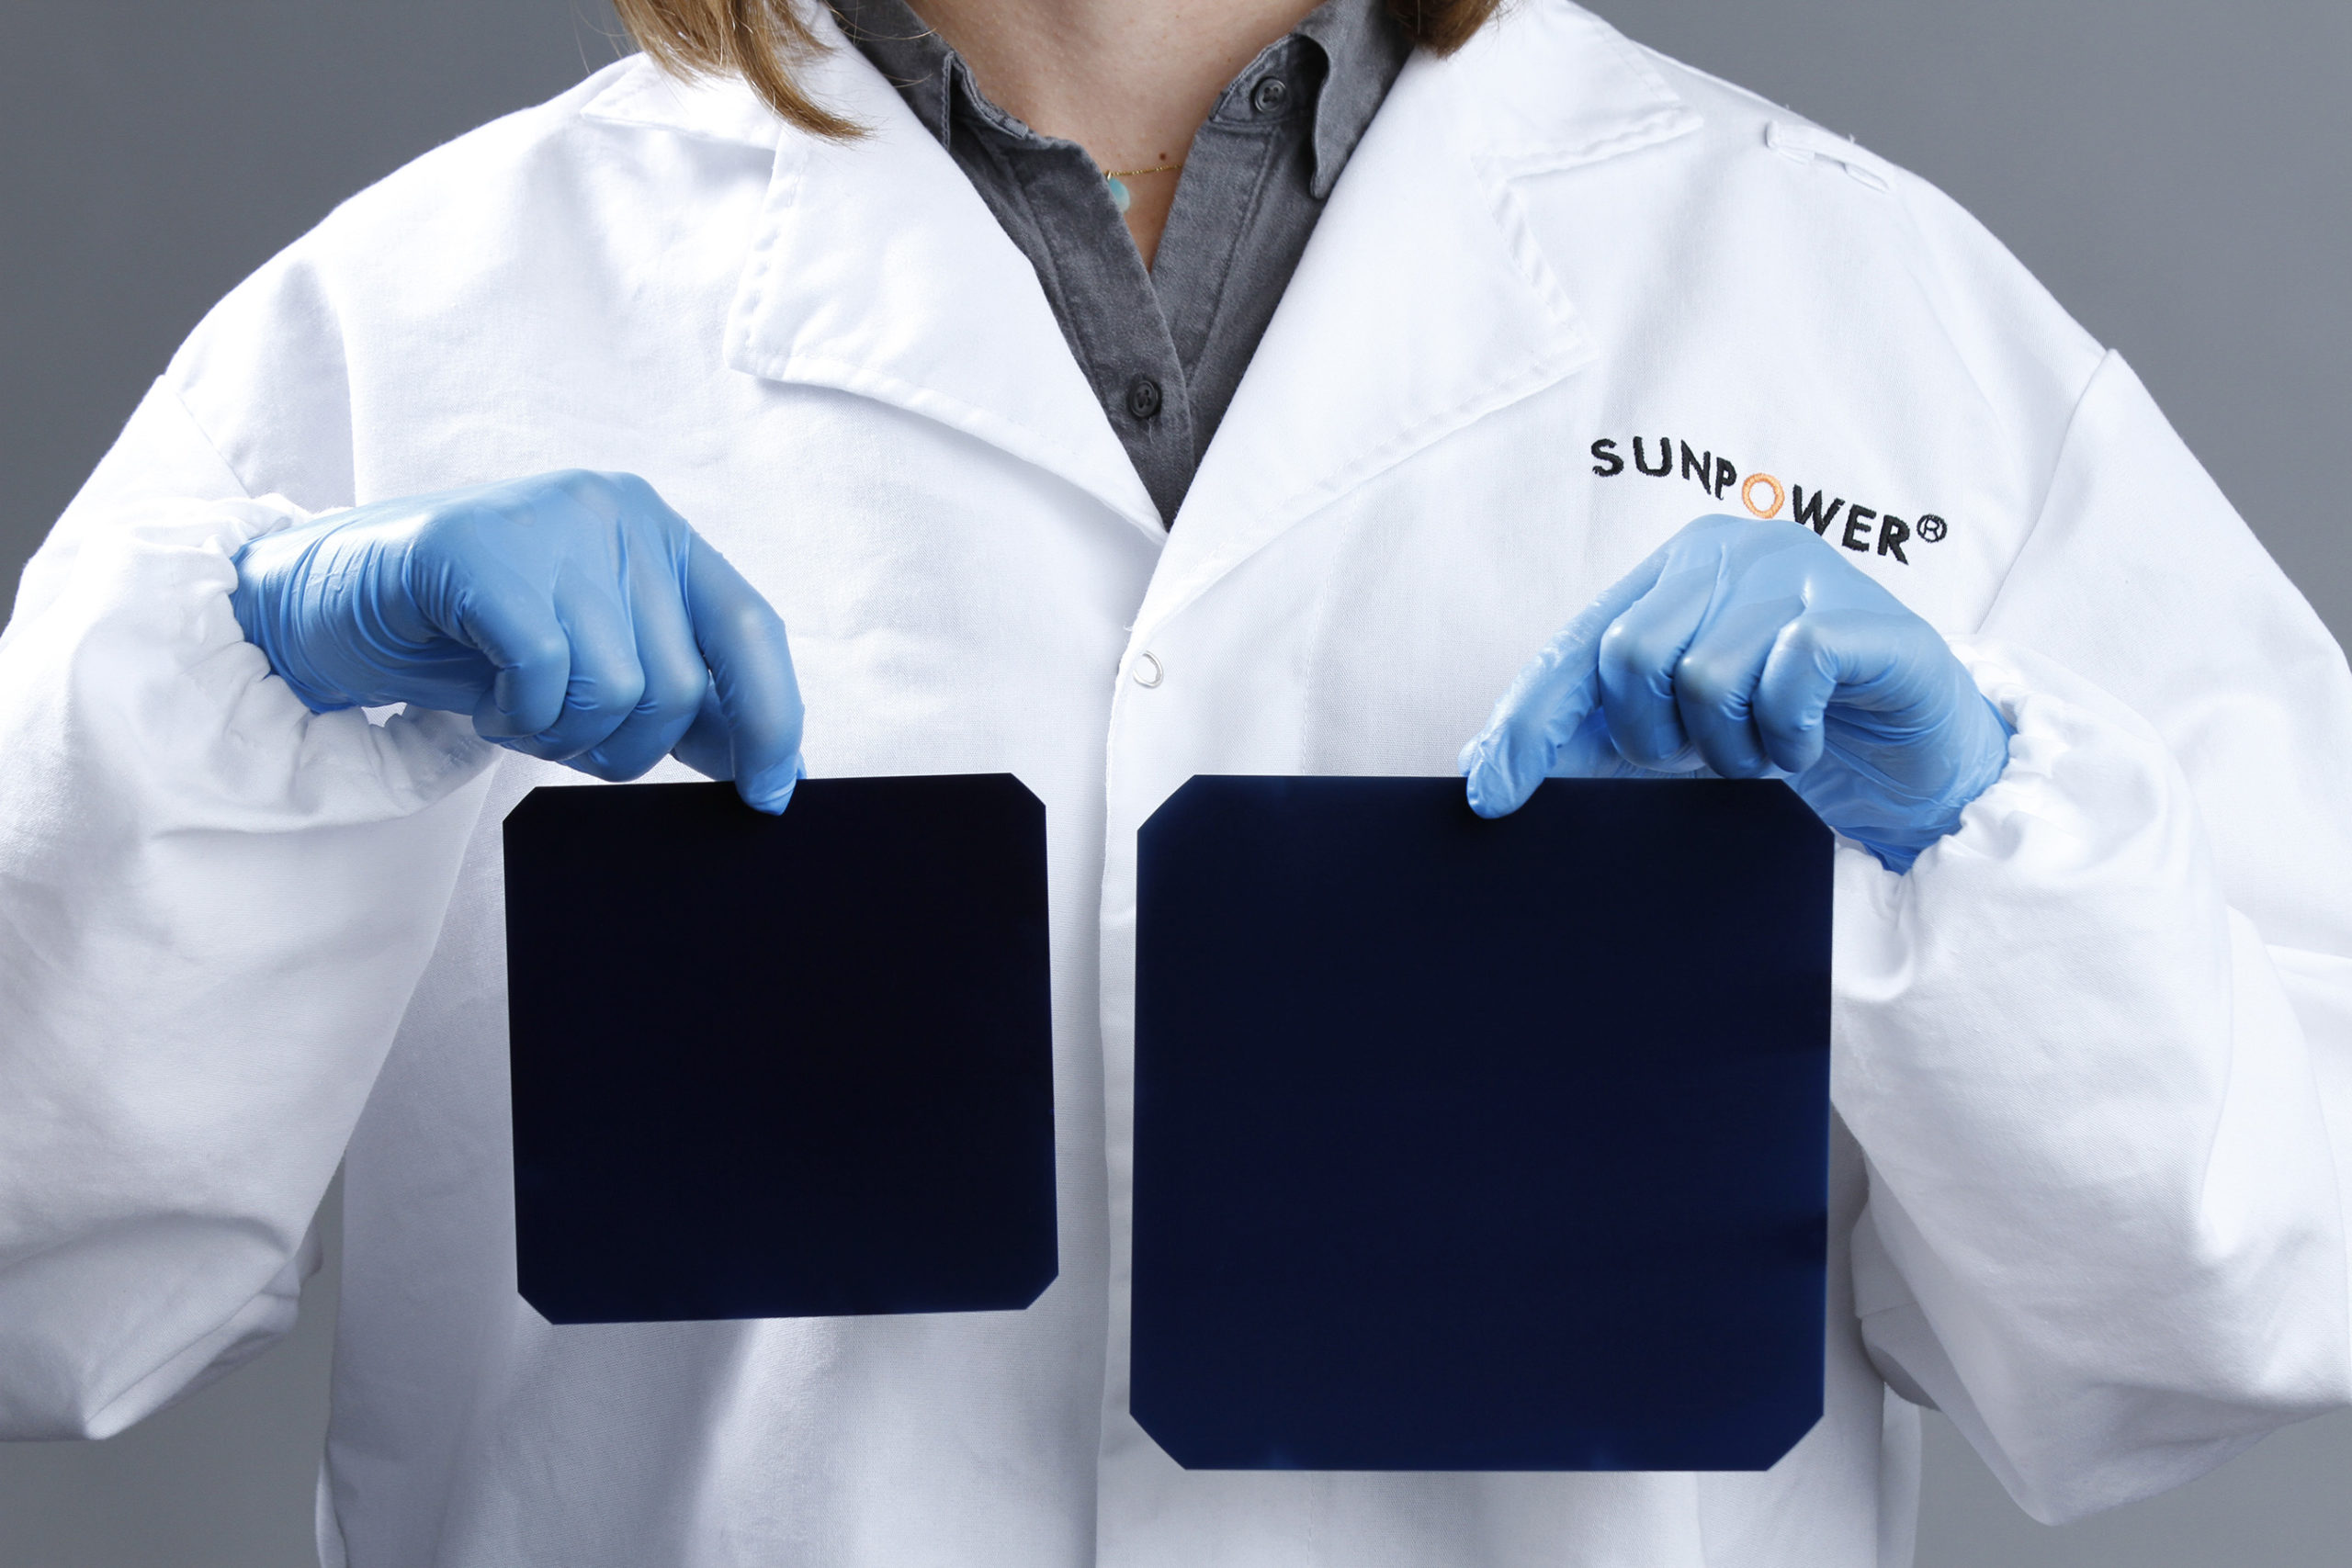 SunPower said that the new 'large-area' 'A-Series' module (1,833.88mm x 1,016mm) deployed 66 NGT cells, which use 156mm x 156mm N-type monocrystalline wafers, compared to its previously highest performing 'X-Series' cells and modules (125mm x 125mm) in a 96 cell configuration 1549.4mm x 1041.4mm, significantly larger than its previous high efficiency module and only targeted at the US residential market. Image: SunPower